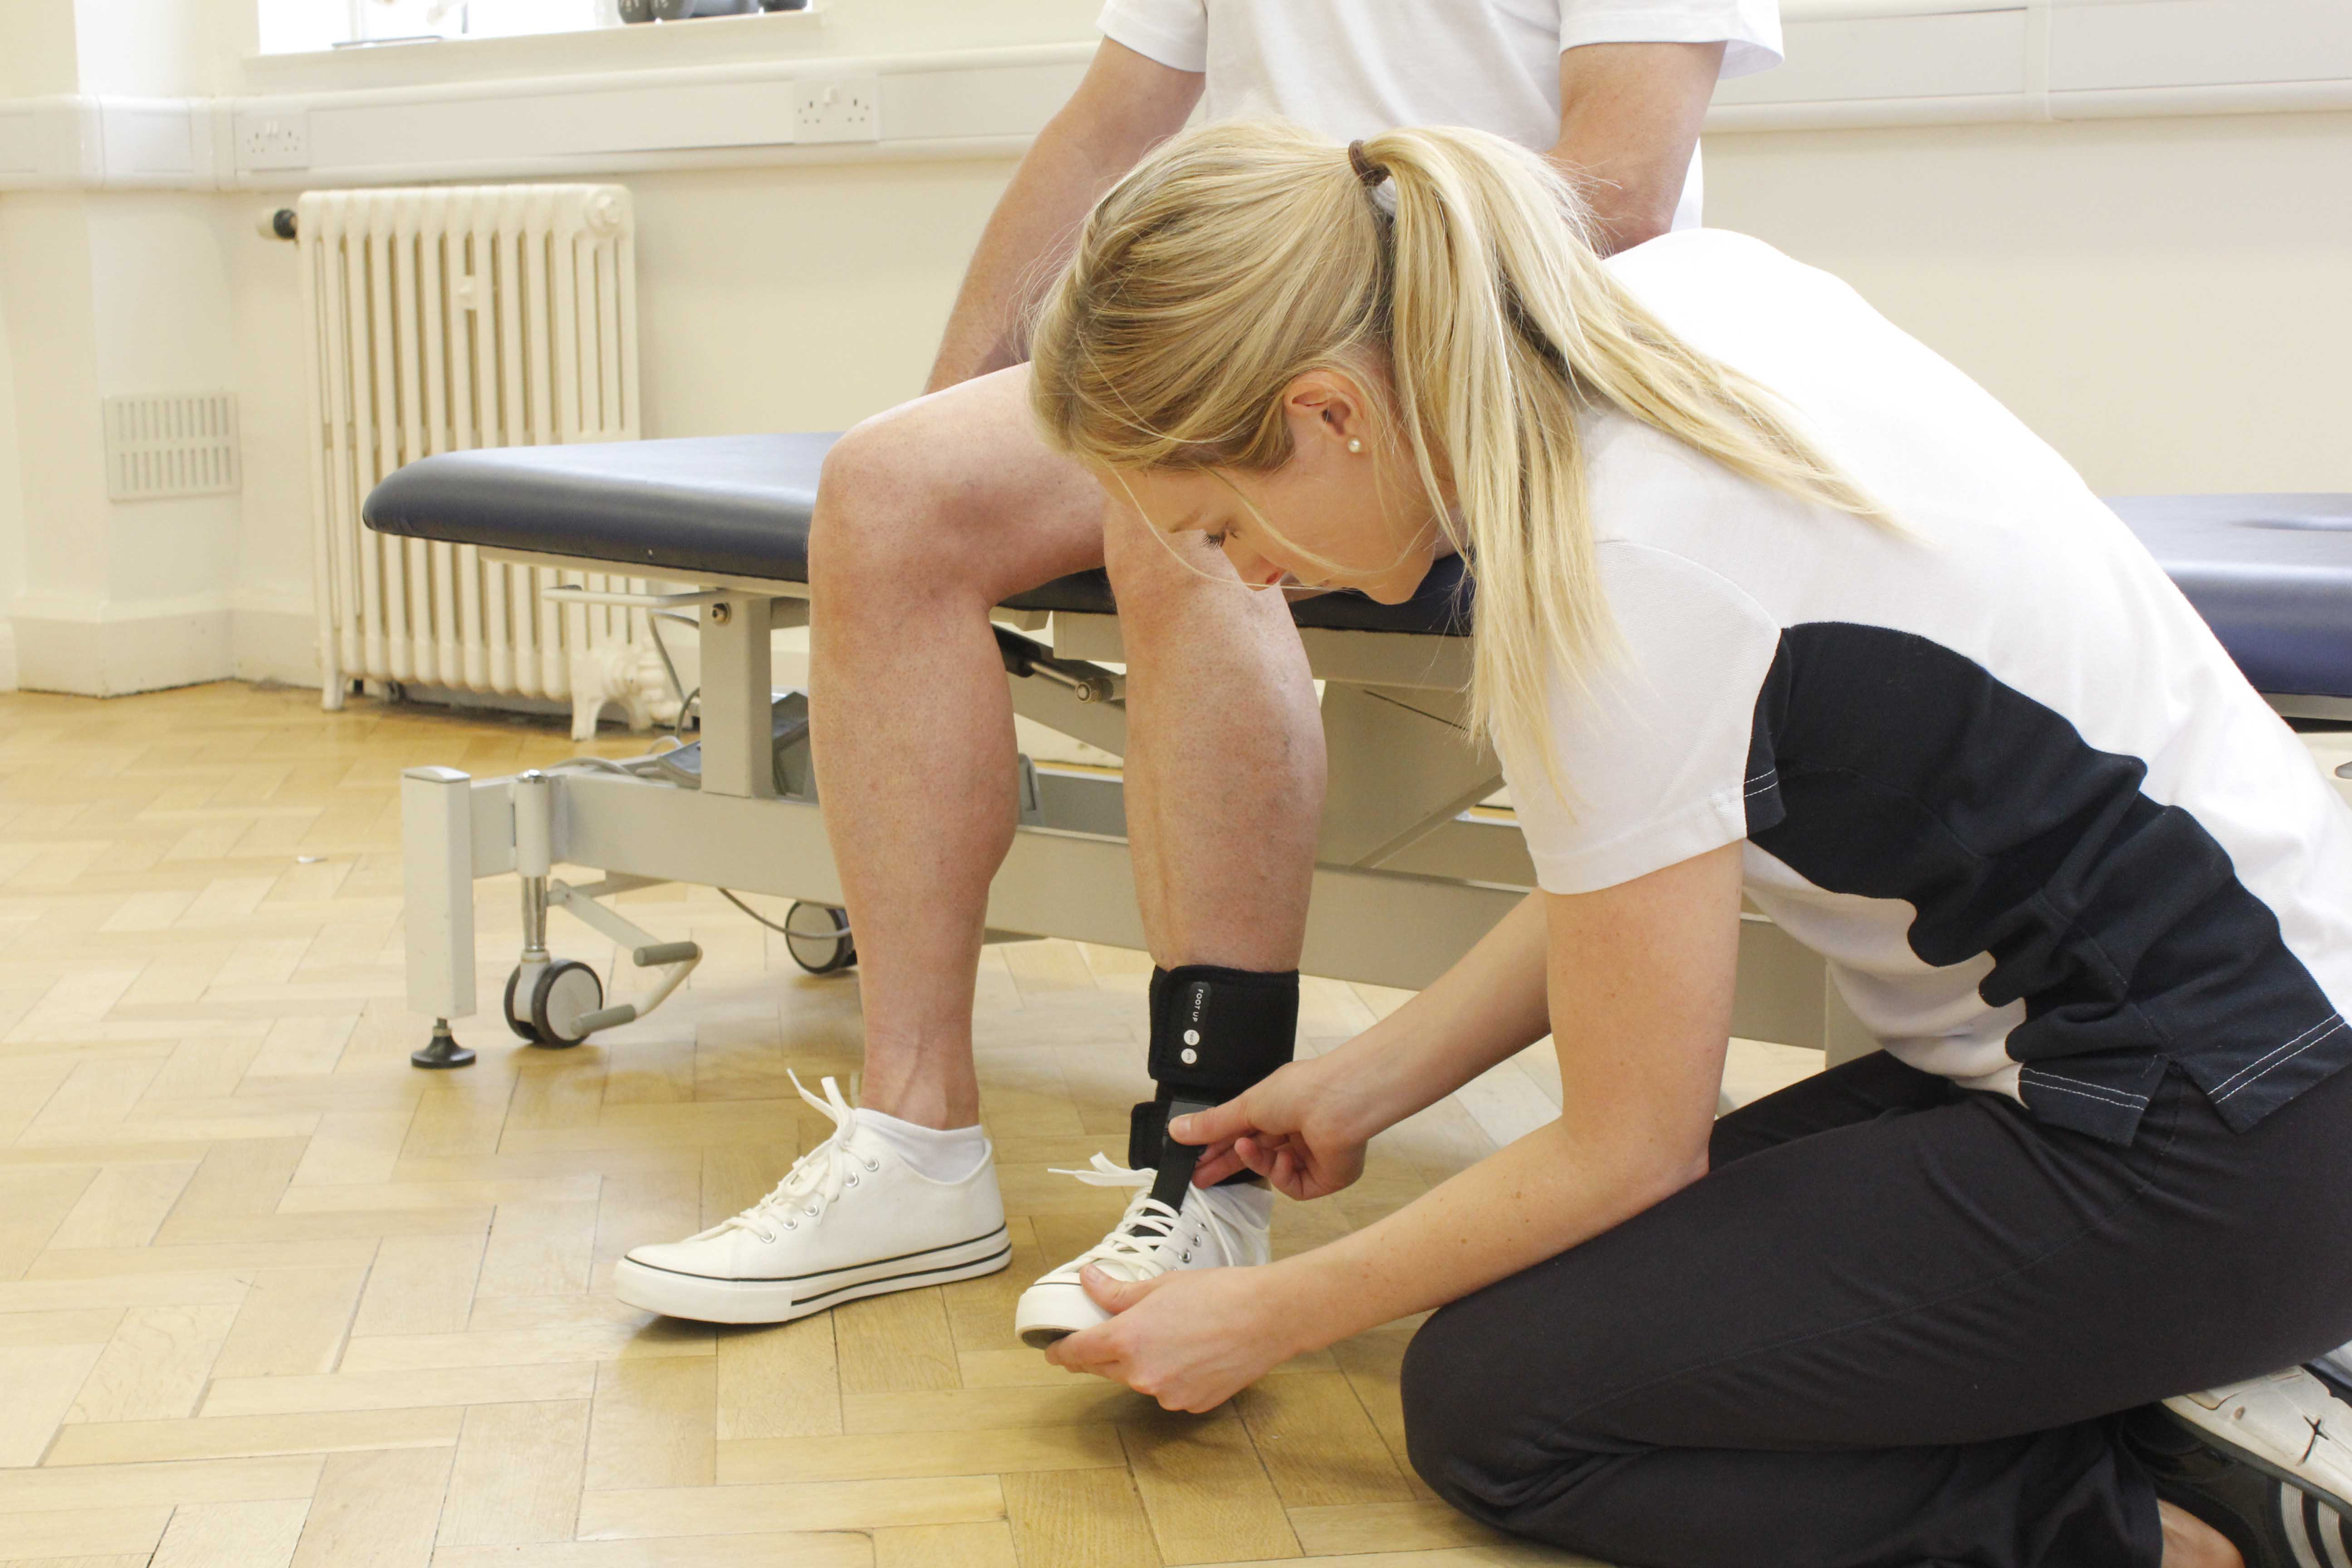 Neurological physiotherapist fitting an ankle brace to prevent foot drop during mobilisation.